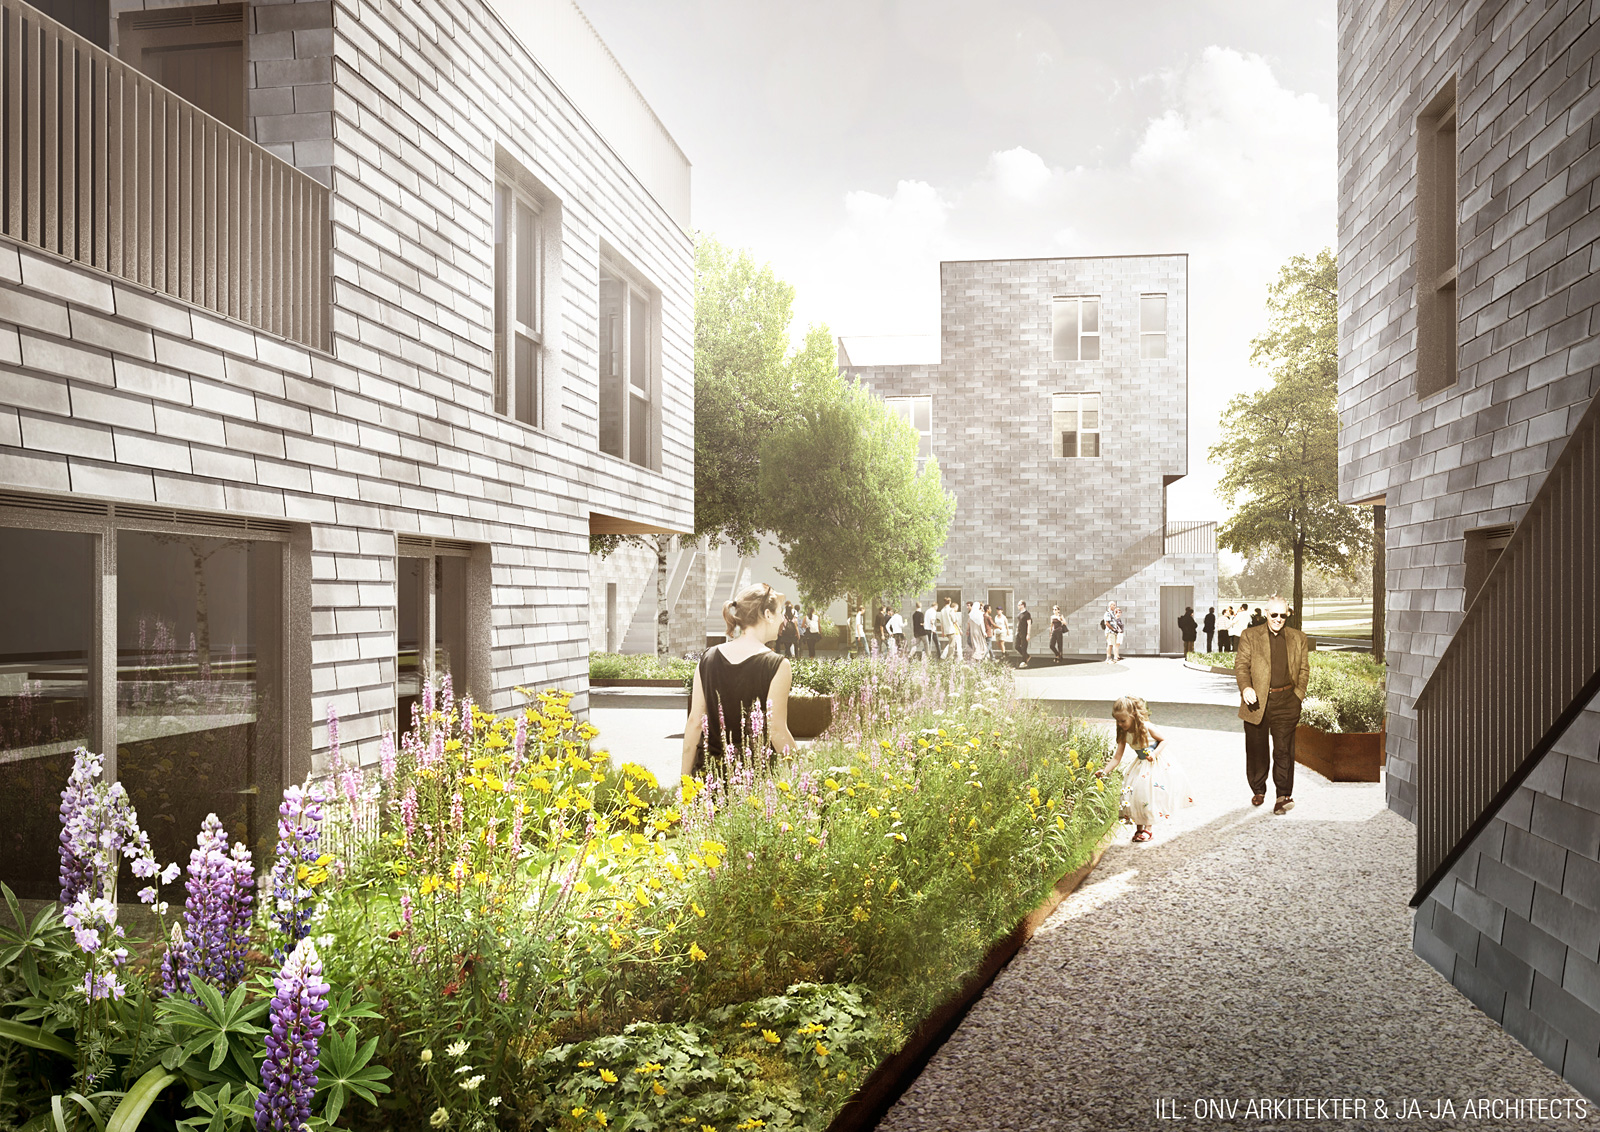 Jaja onv architects win copenhagen affordable housing competition - Affordable social housing ...